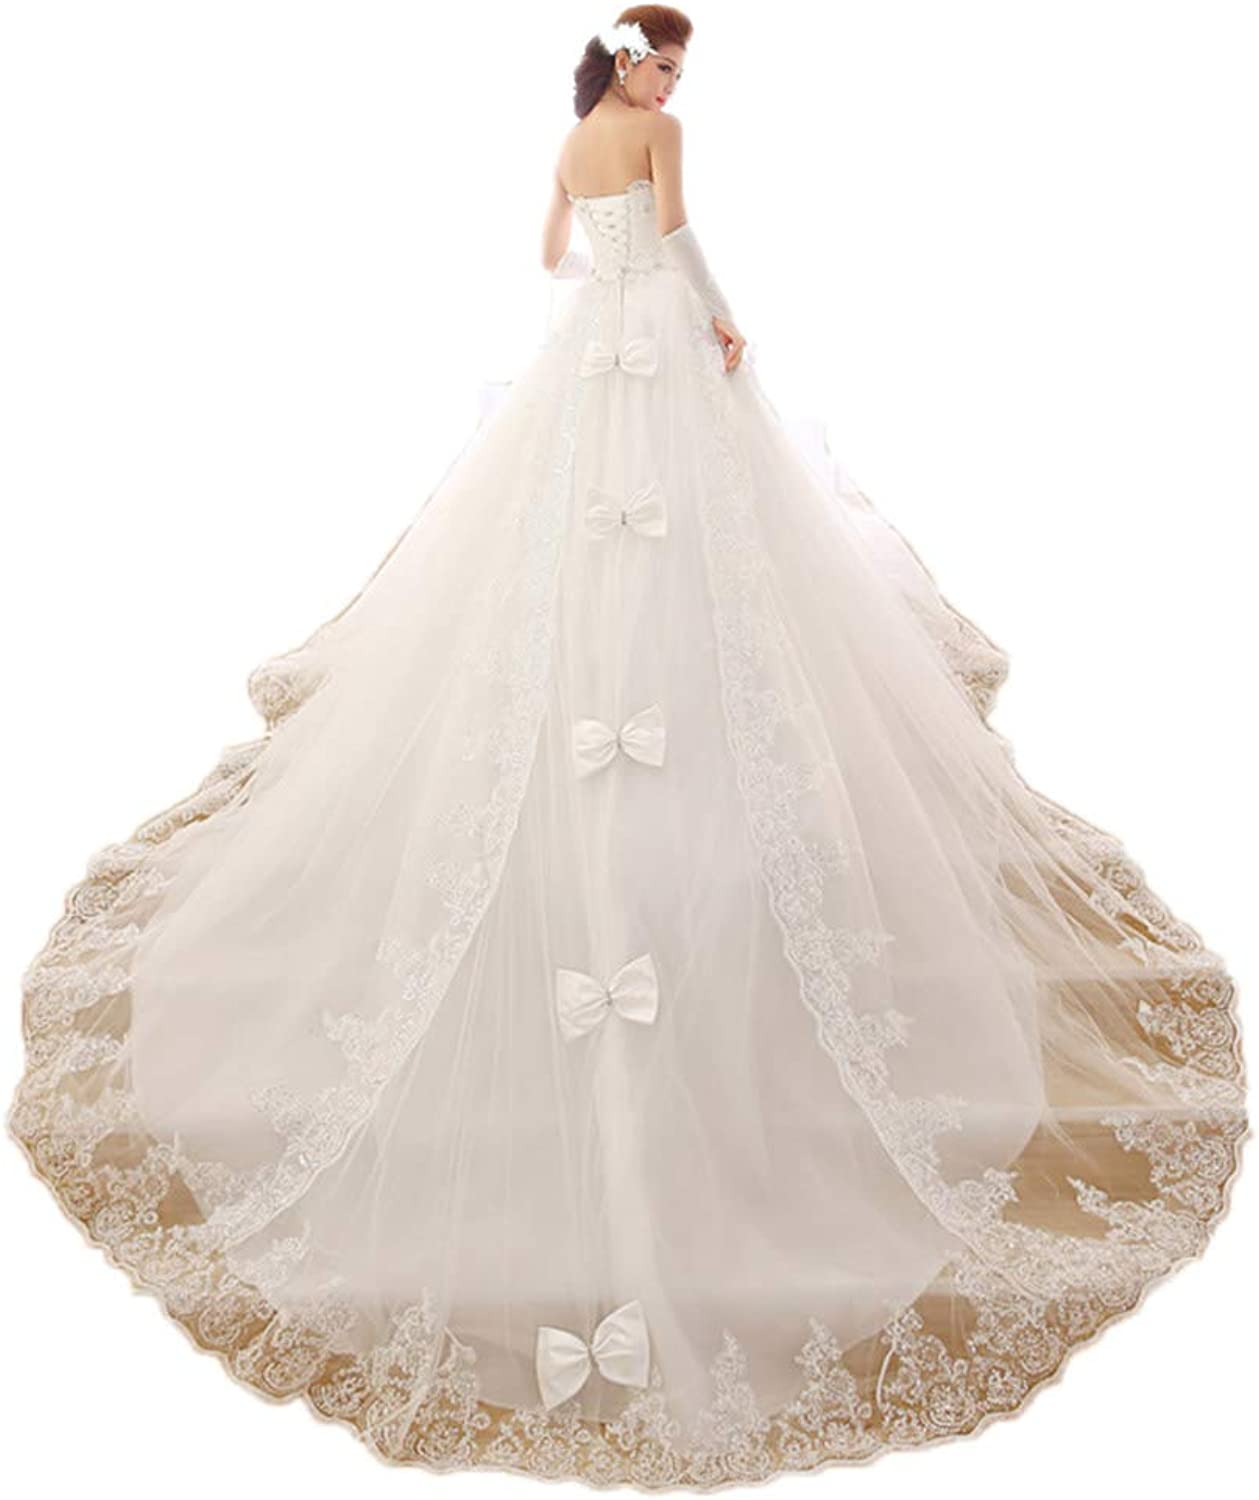 Women's Long Trailing Tube Top Sleeveless Lace Wedding Dress Bride Wedding Dress Bridal Gown